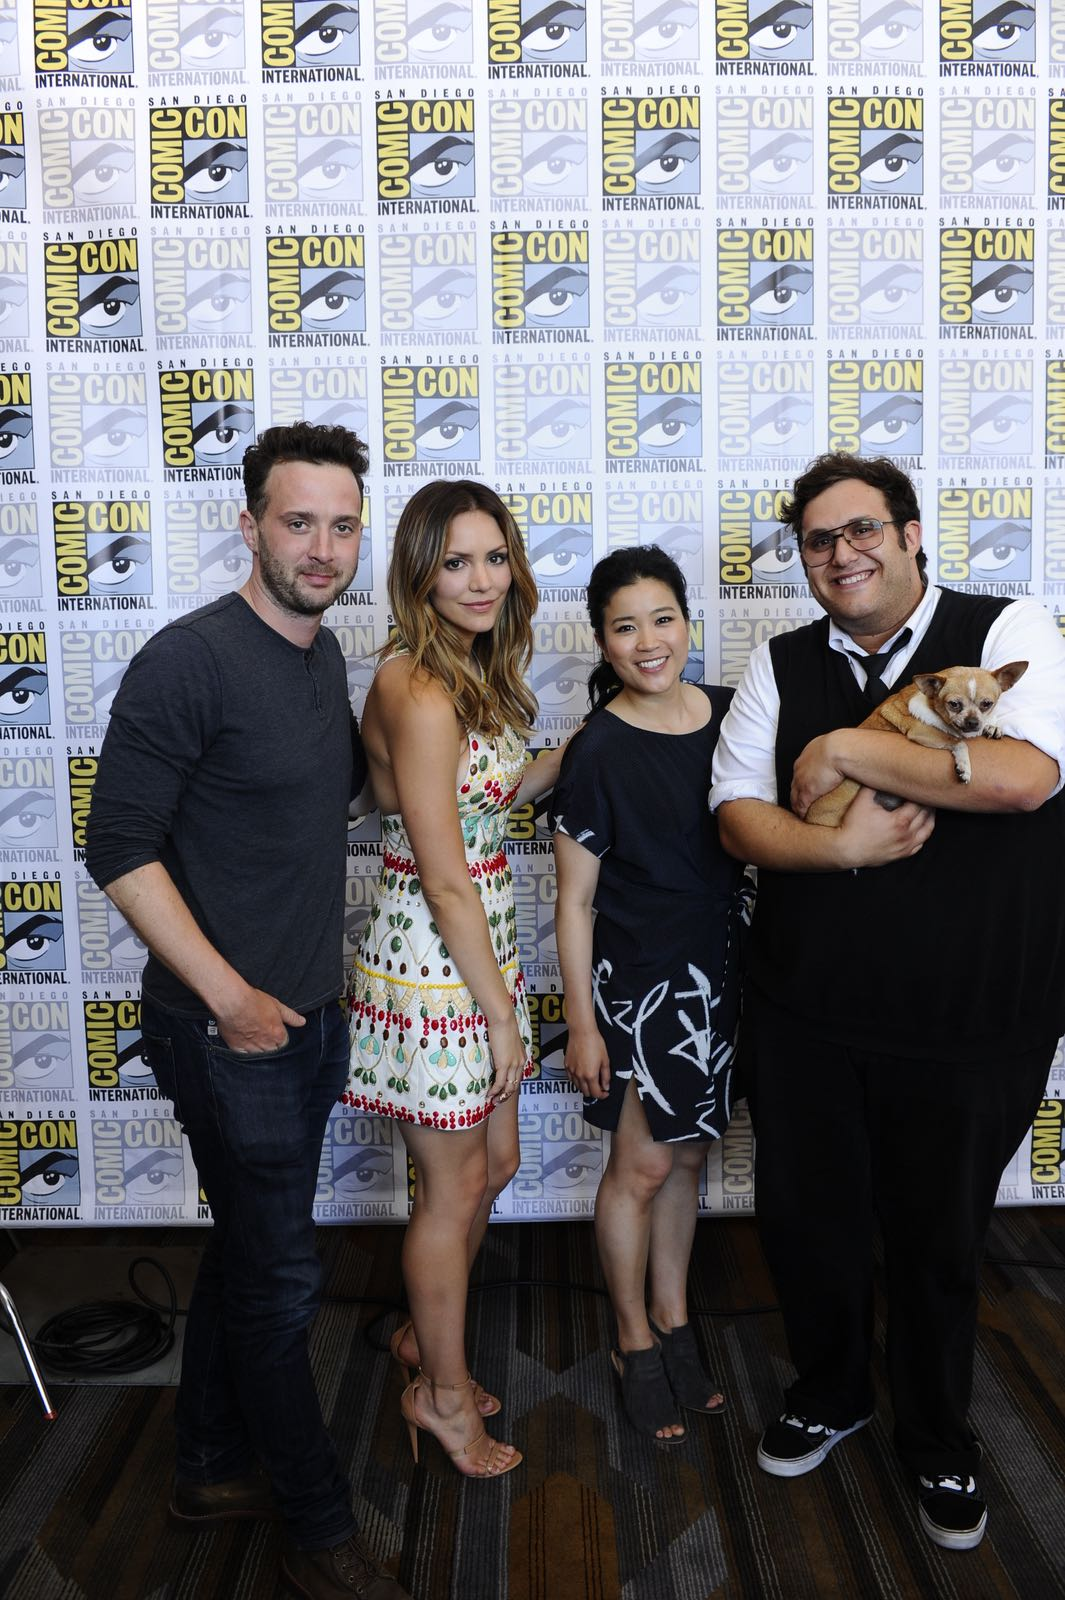 The cast of Scorpion goes live on Facebook with CBS Interactive at COMIC-CON® 2016 in San Diego, California.Pictured: Eddie Kaye Thomas, Katharine McPhee, Jadyn Wong and Ari Stidham  Photo: Johnny Vy/CBS ©2016 CBS Broadcasting, Inc. All Rights Reserved